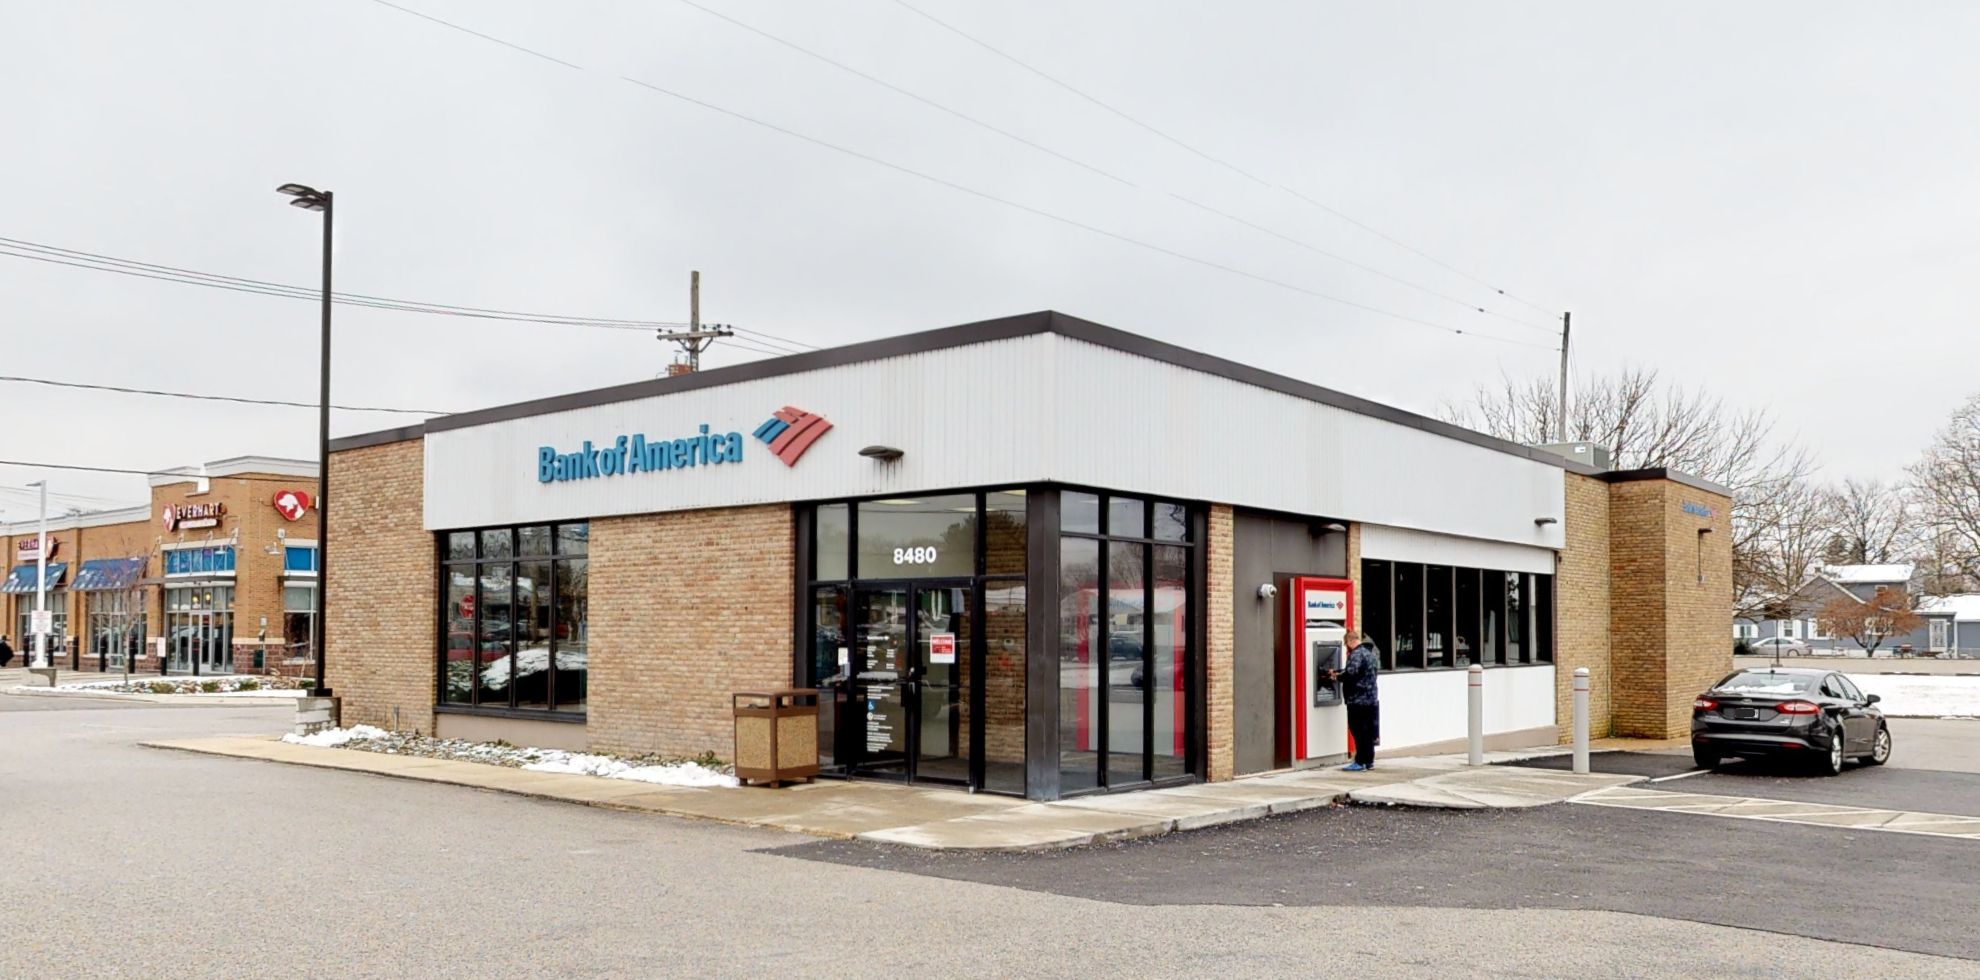 Bank of America financial center with walk-up ATM | 8480 Fort Smallwood Rd, Pasadena, MD 21122